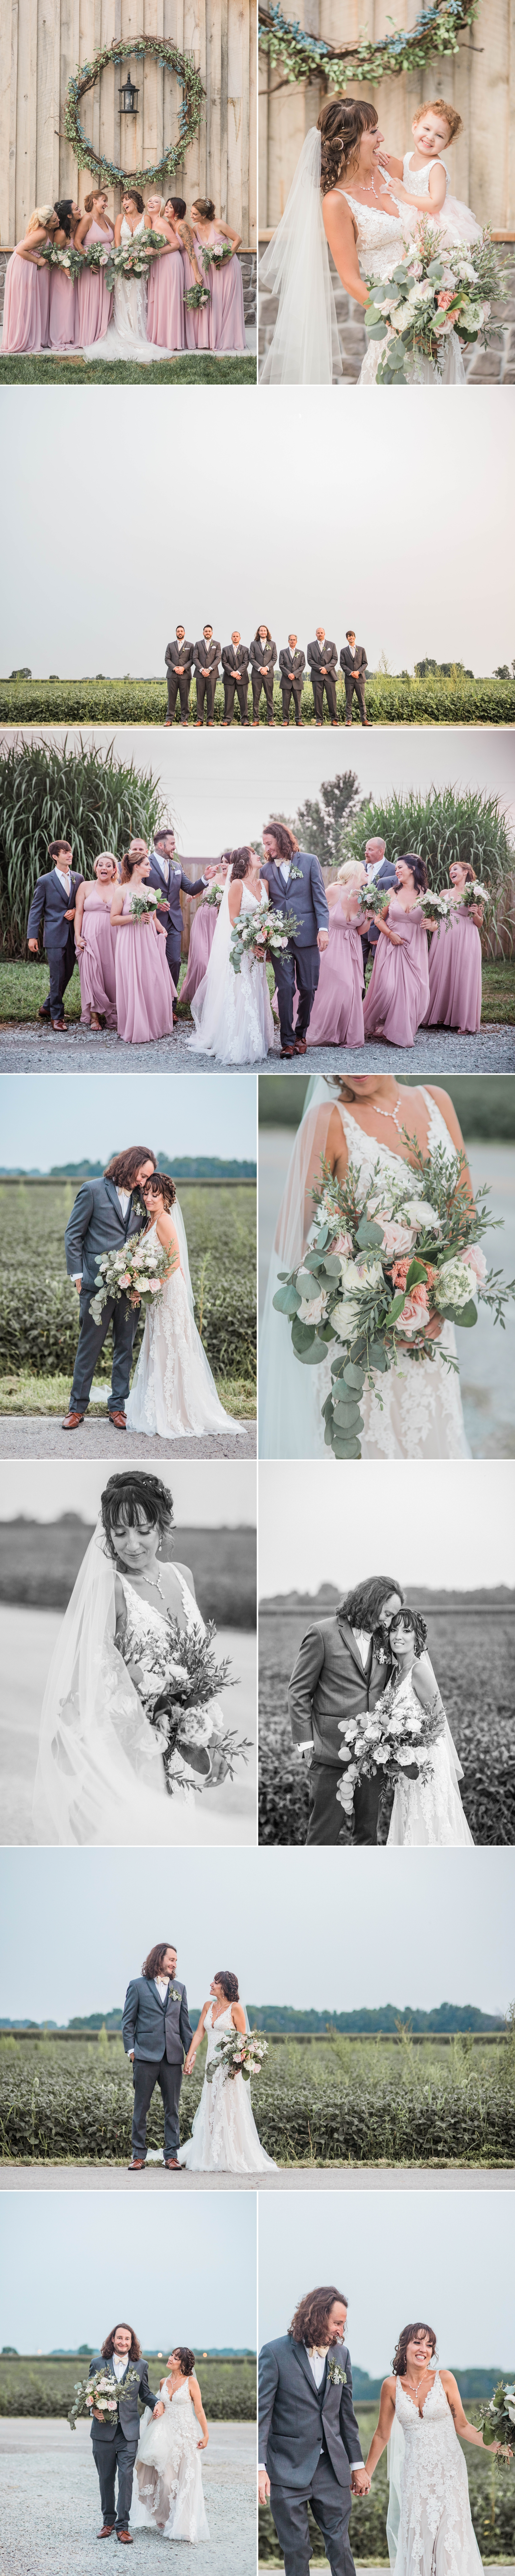 crystal coop indiana bride groom wedding party portraits bouquet kiss field